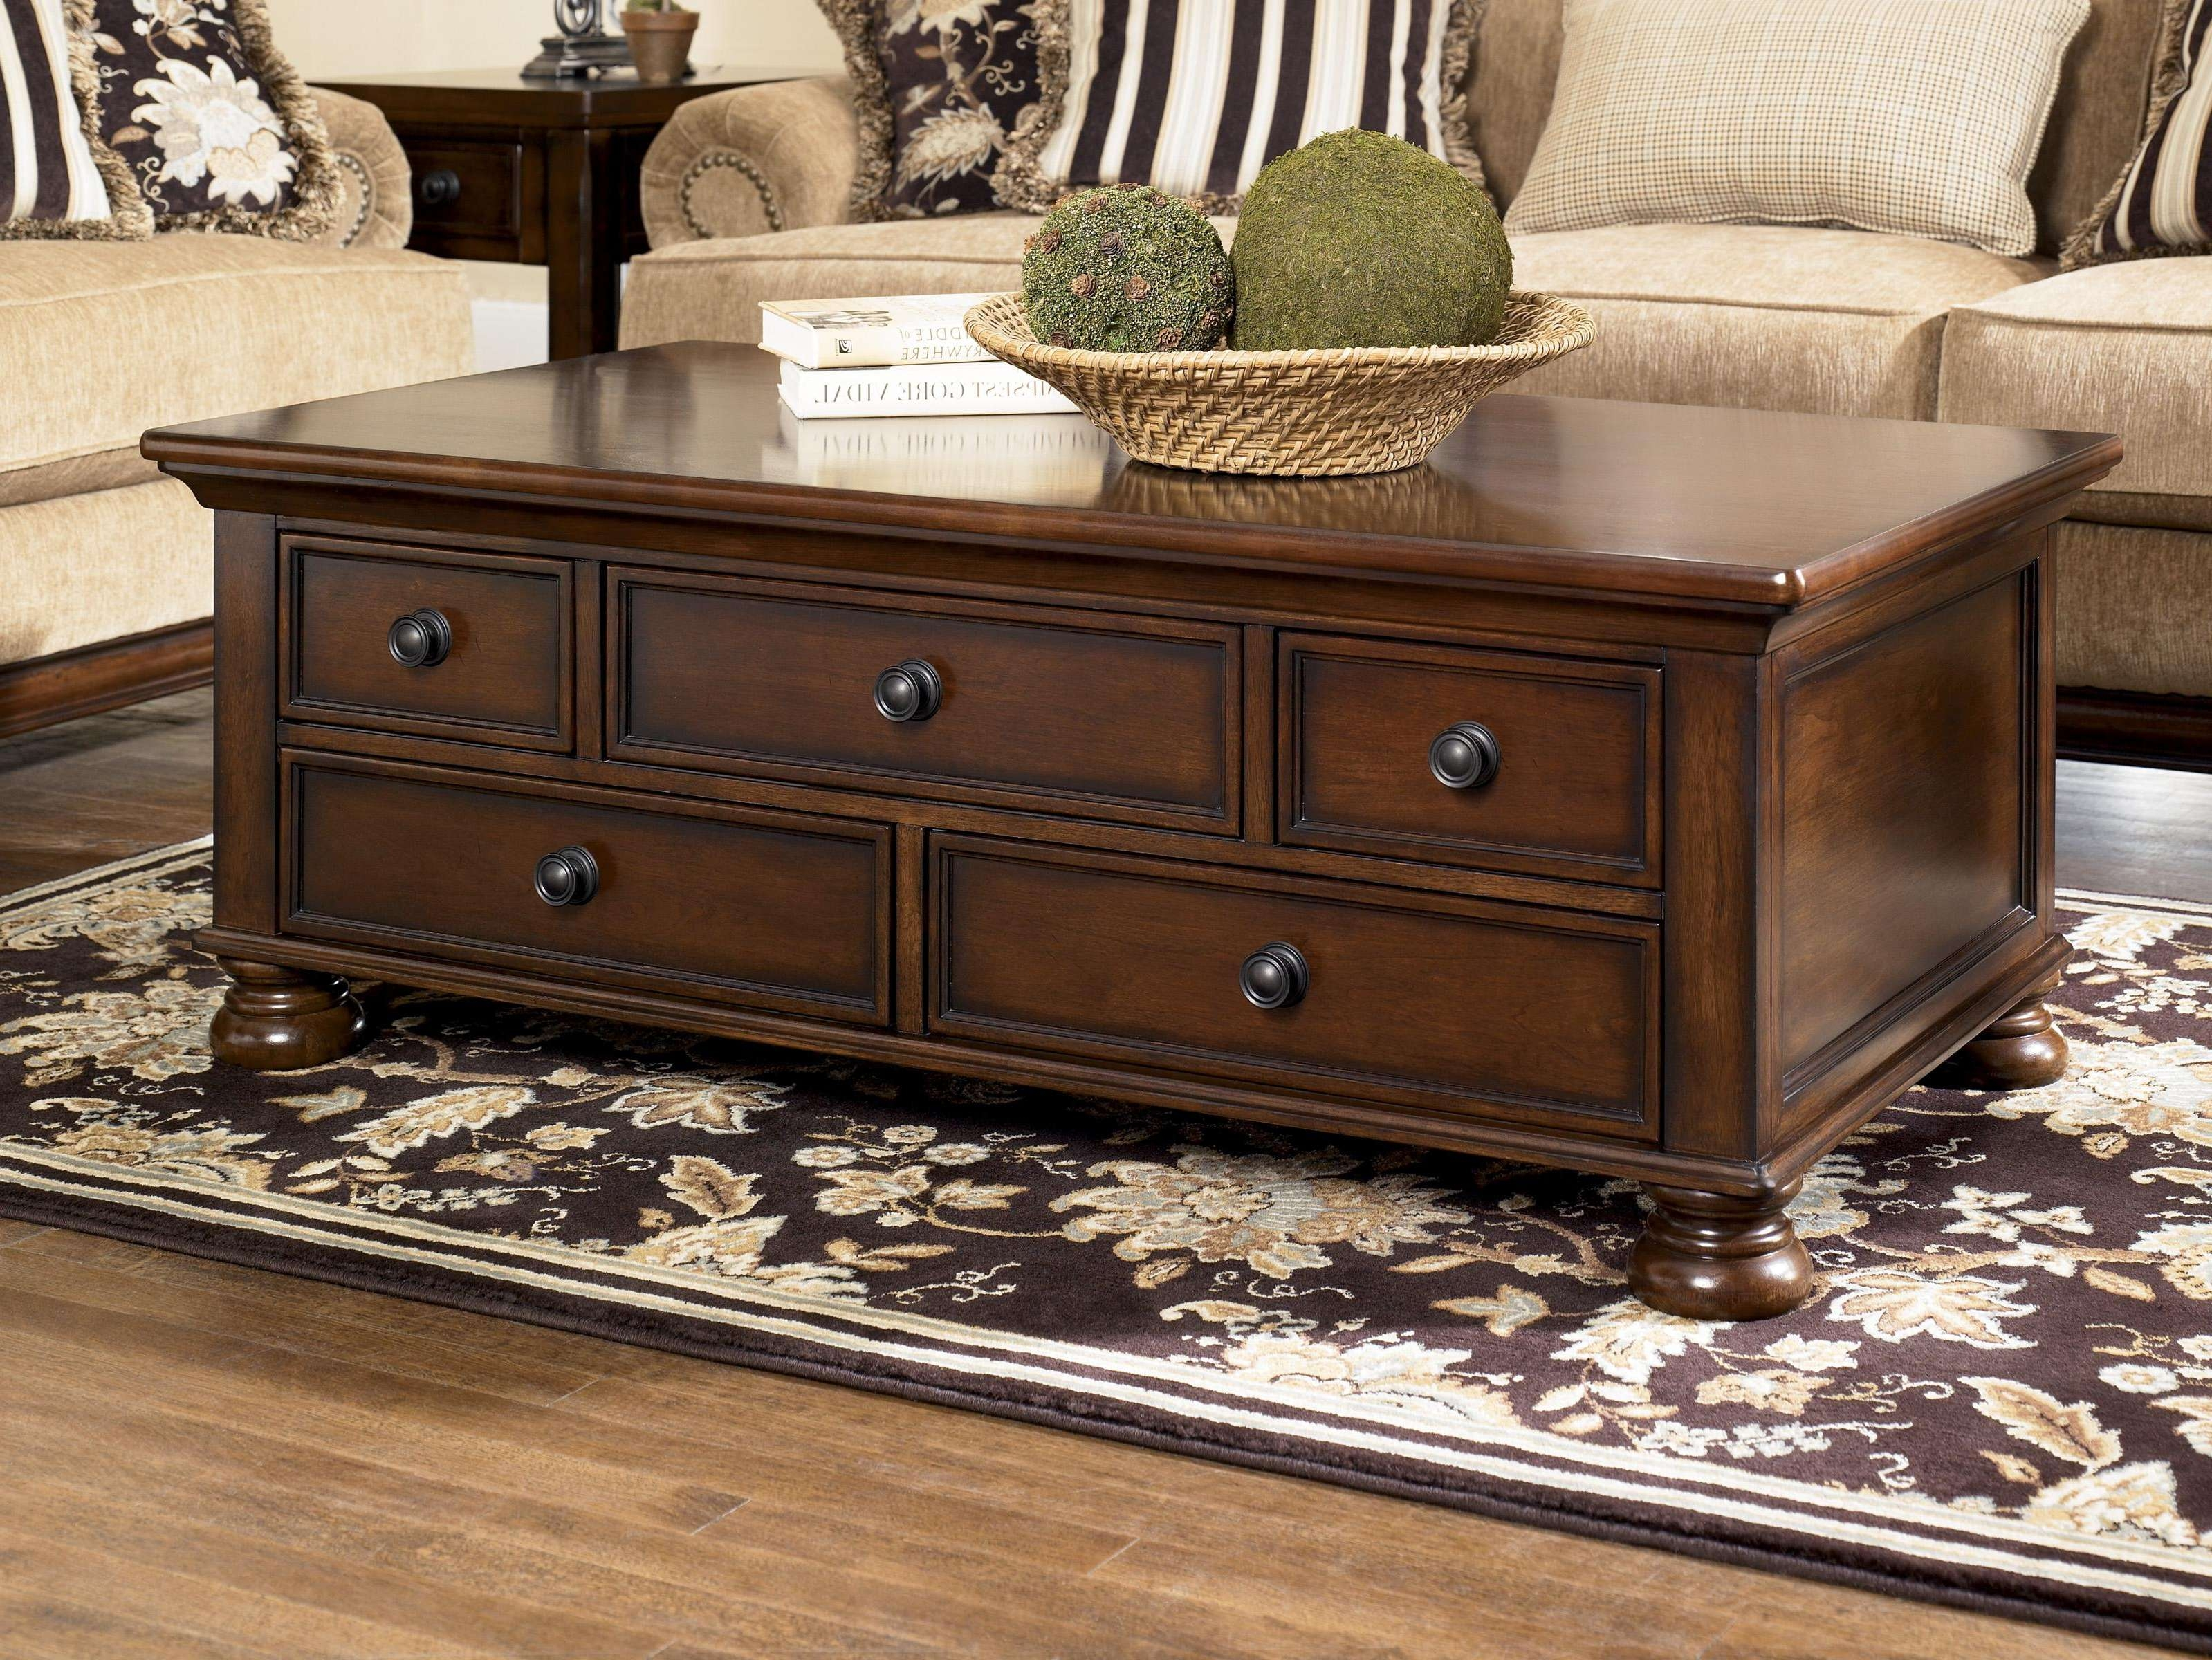 Popular Hardwood Coffee Tables With Storage Within Coffee Table: Surprising Coffee Table Storage Small Glass Coffee (View 15 of 20)